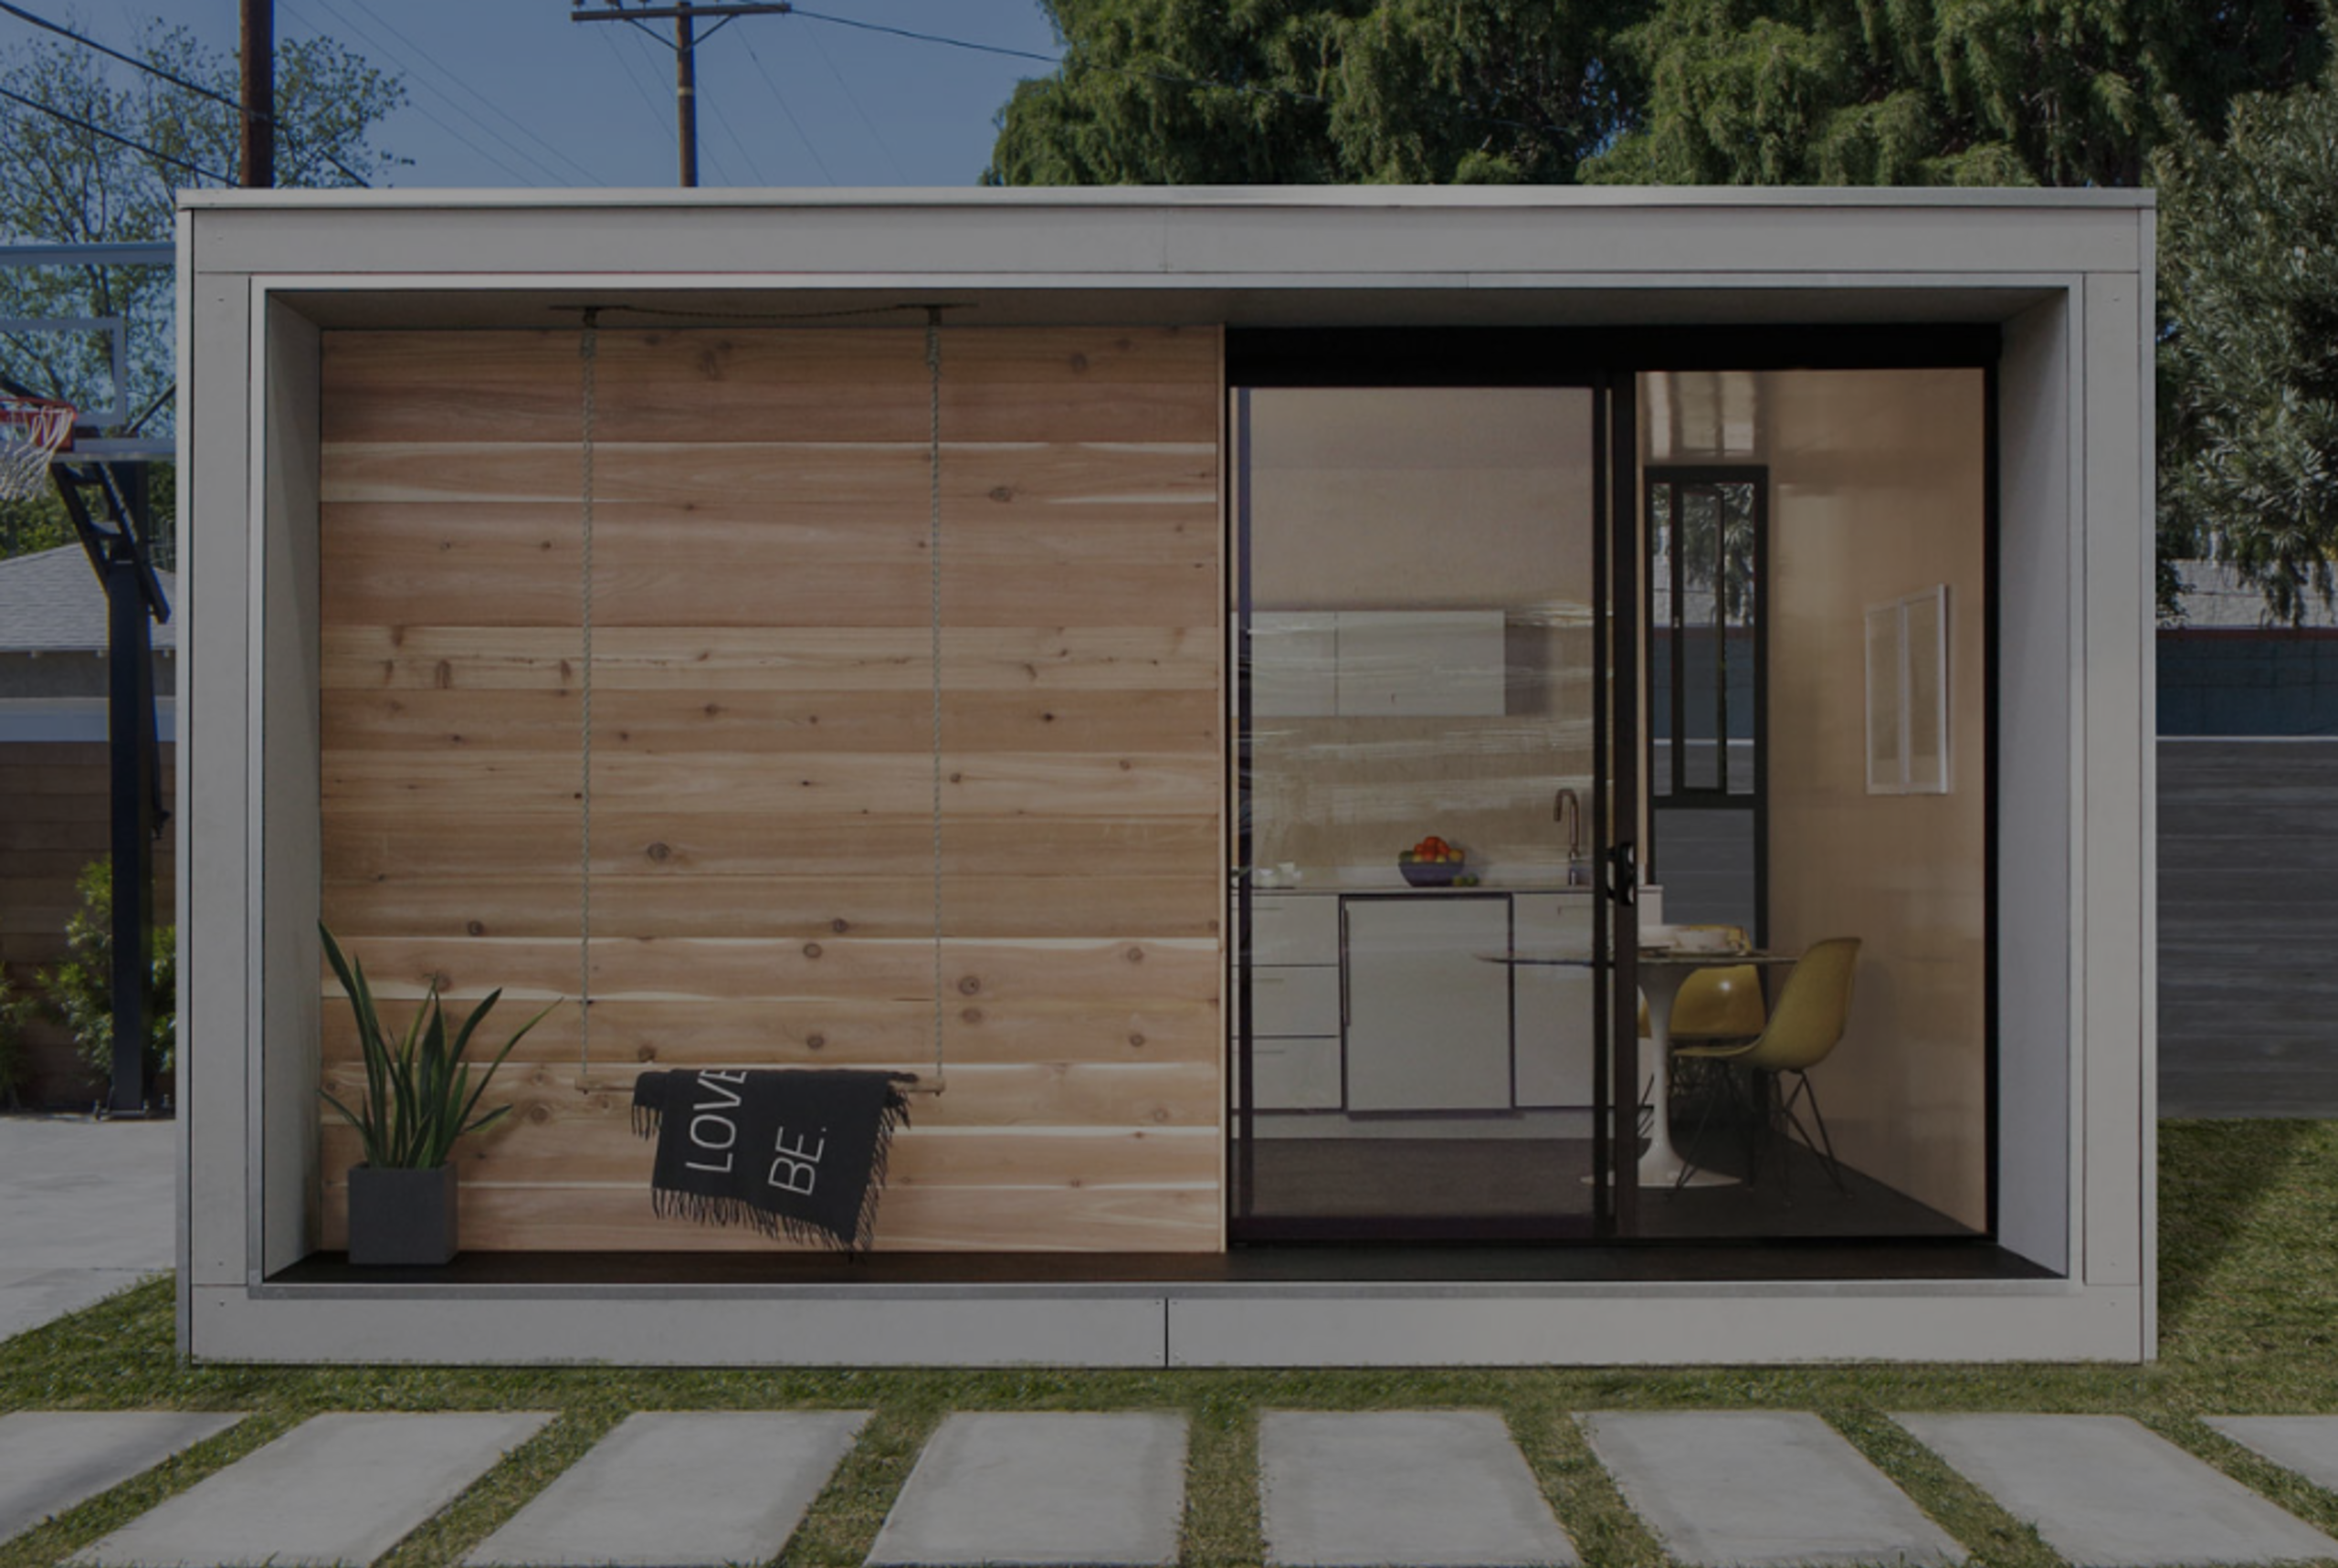 5 Accessory Dwelling Units That Will Increase Your Home Value and Generate Income